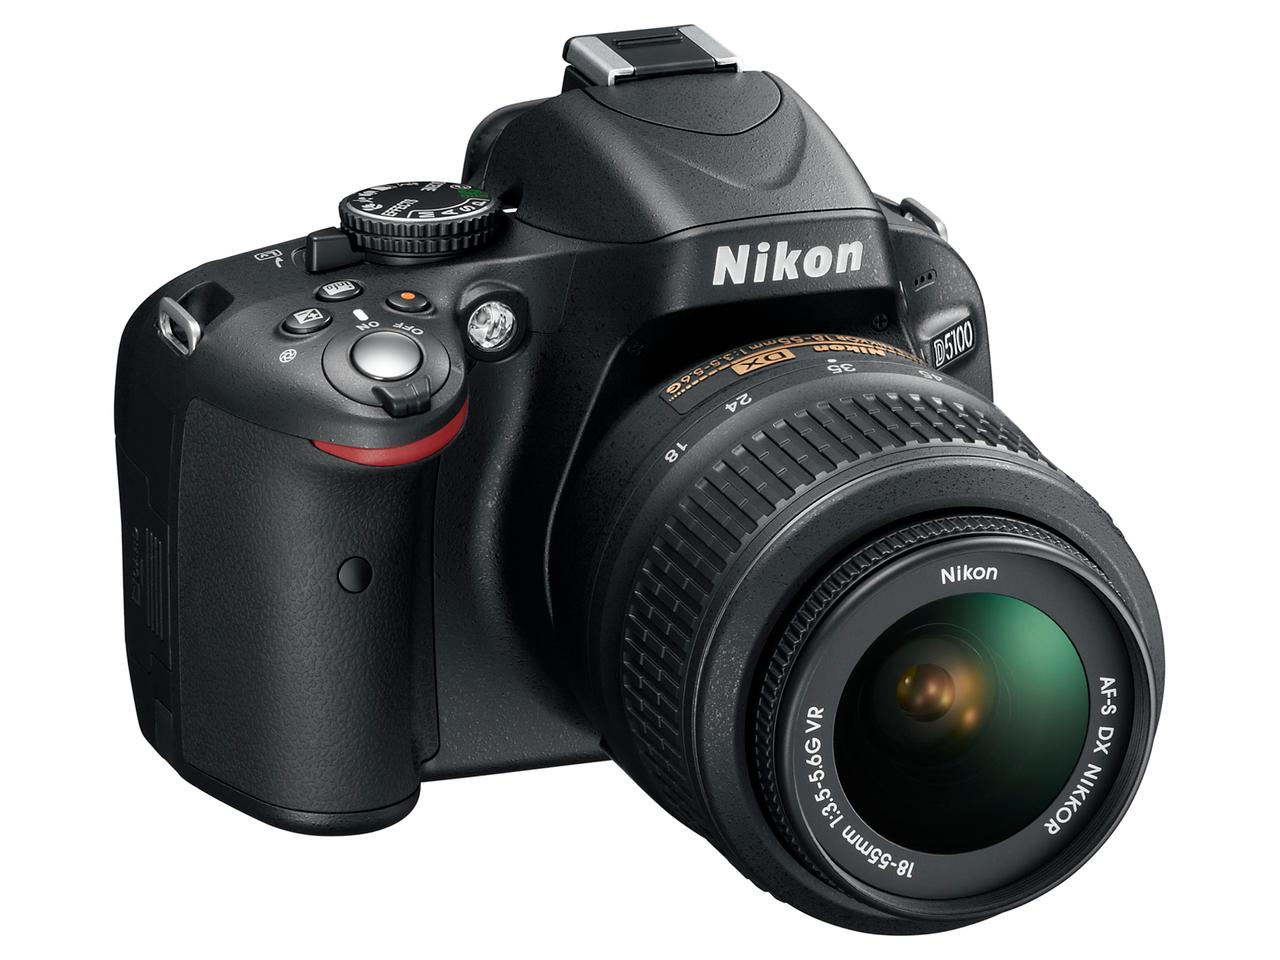 The D5100 is the latest addition to Nikon's entry-level D-SLR lineup